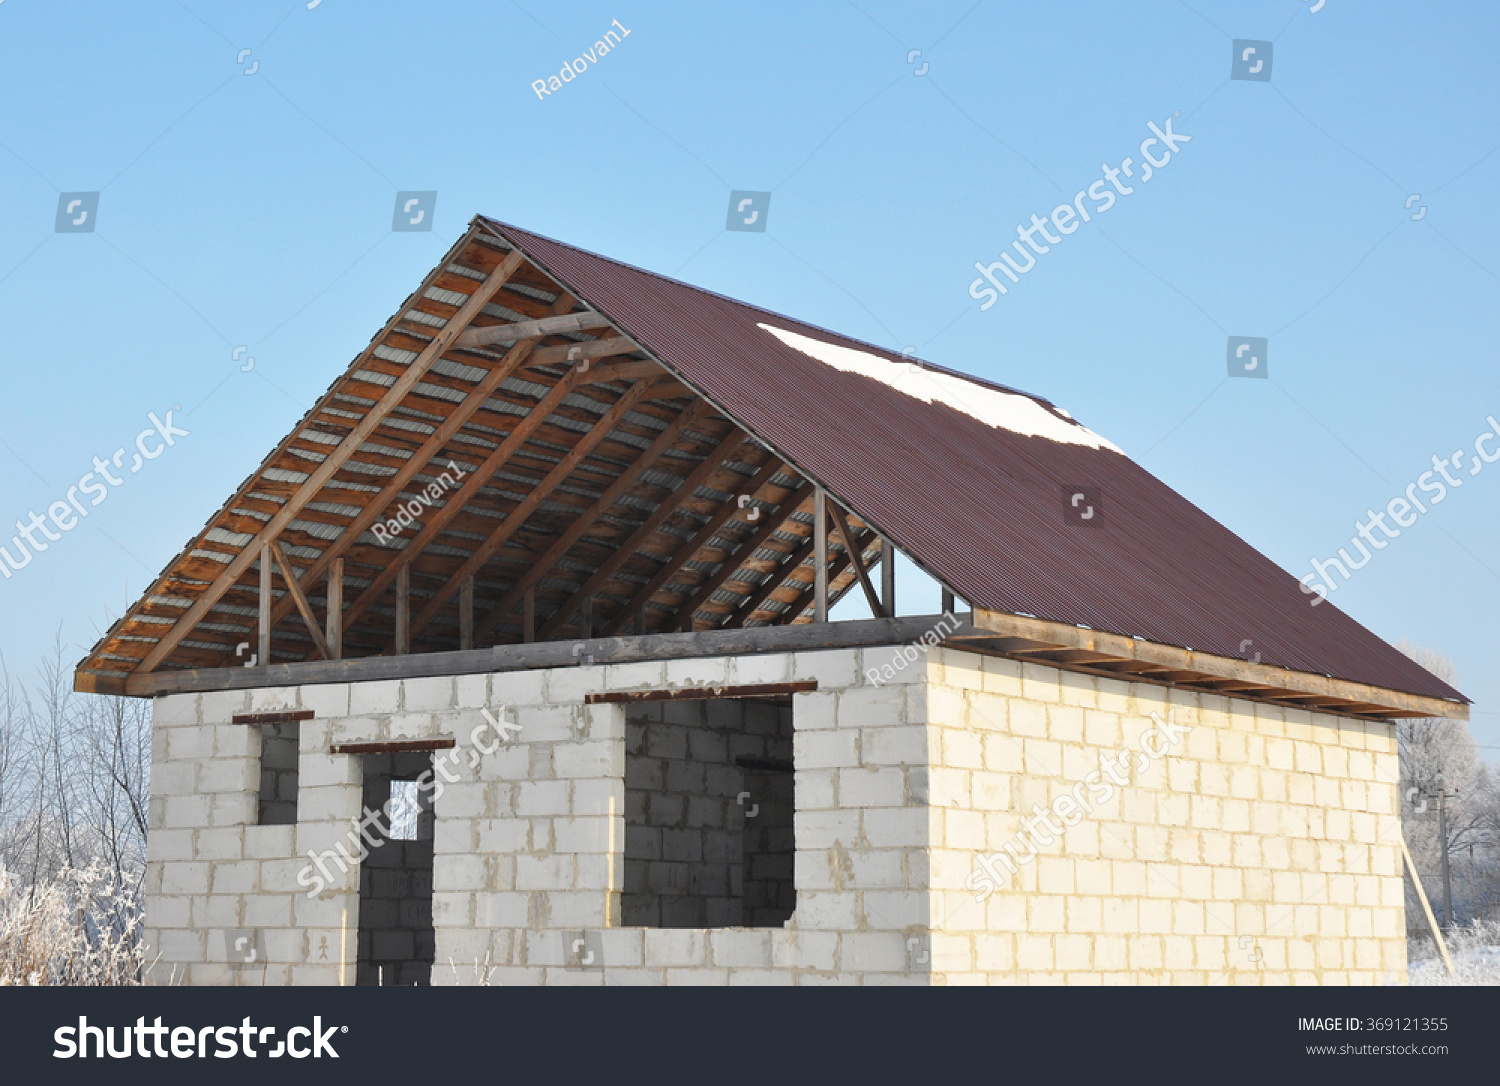 Roofing Construction Building New House Autoclaved Stock